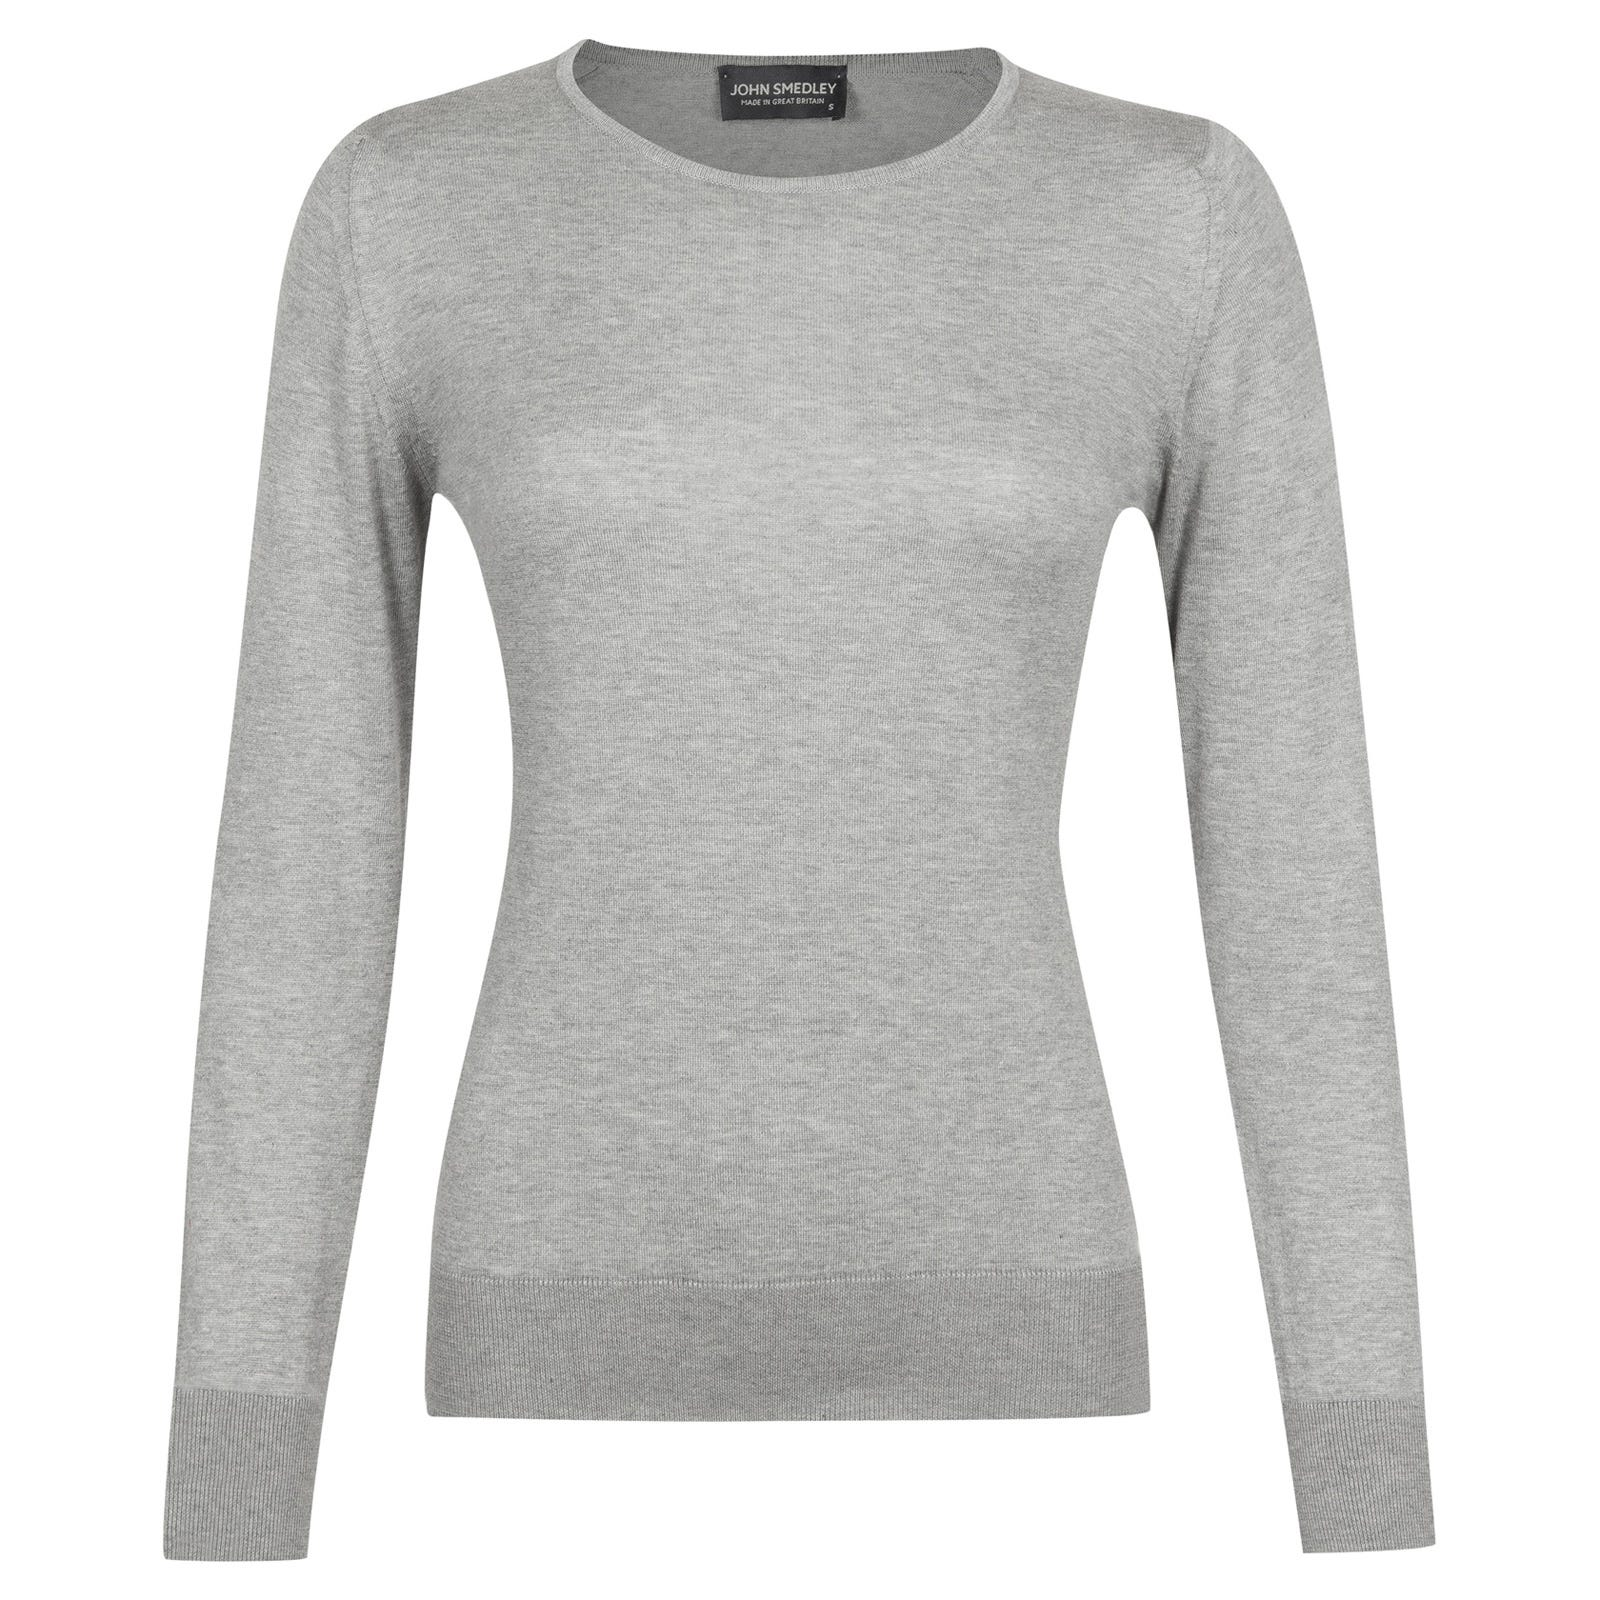 John Smedley paddington Sea Island Cotton Sweater in Silver-XL